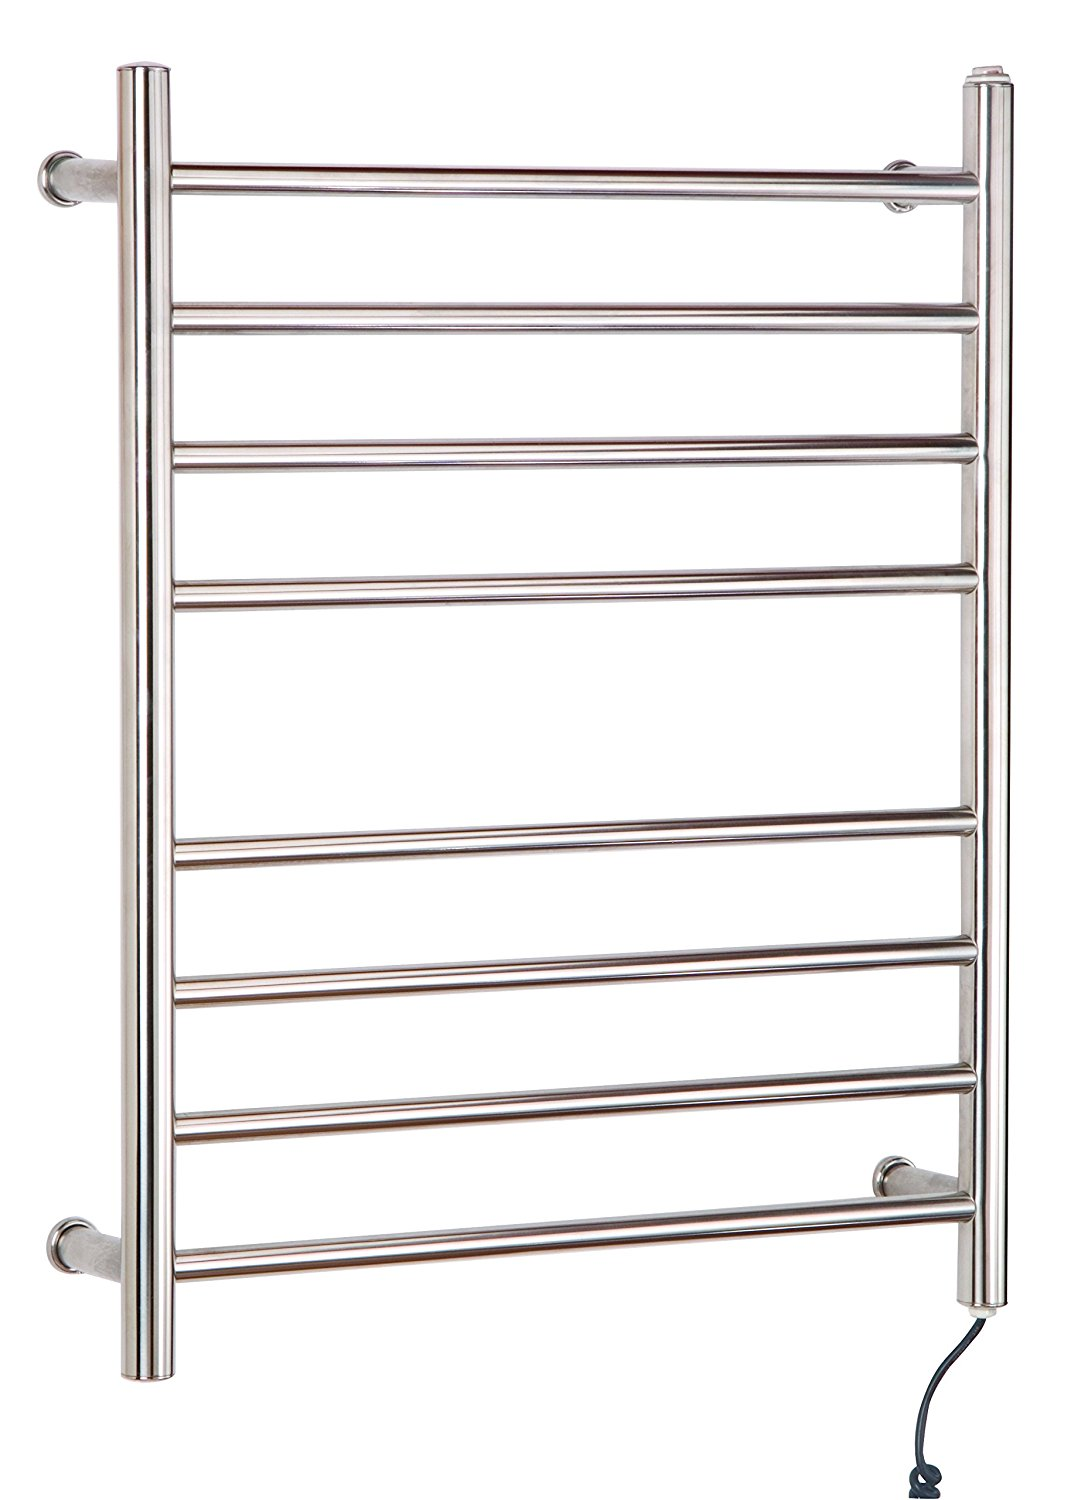 Myson 8-Bar Wall Mount Towel Warmer